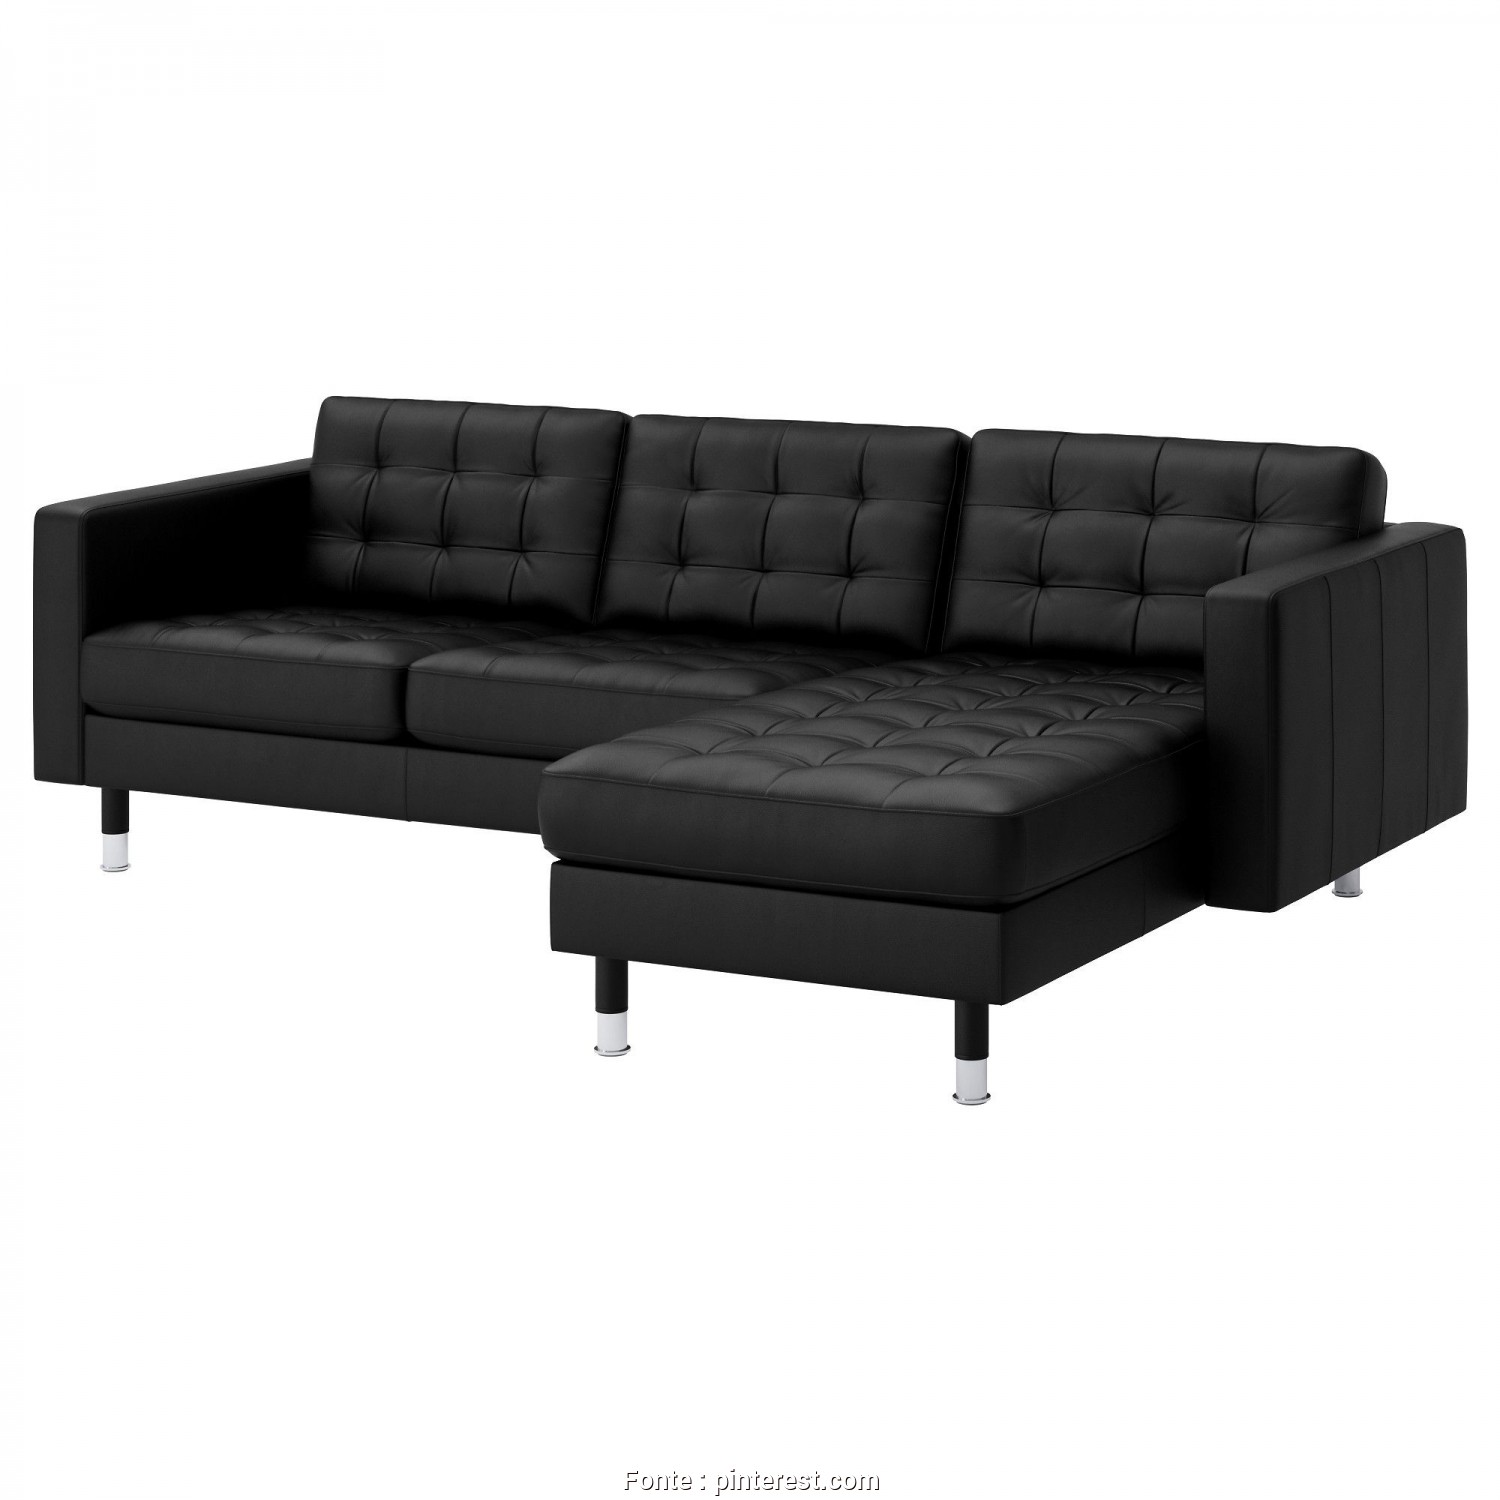 Ikea Backabro Bettsofa, Delizioso LANDSKRONA Two-Seat Sofa, Chaise Longue Grann/Bomstad Black/Metal, IKEA